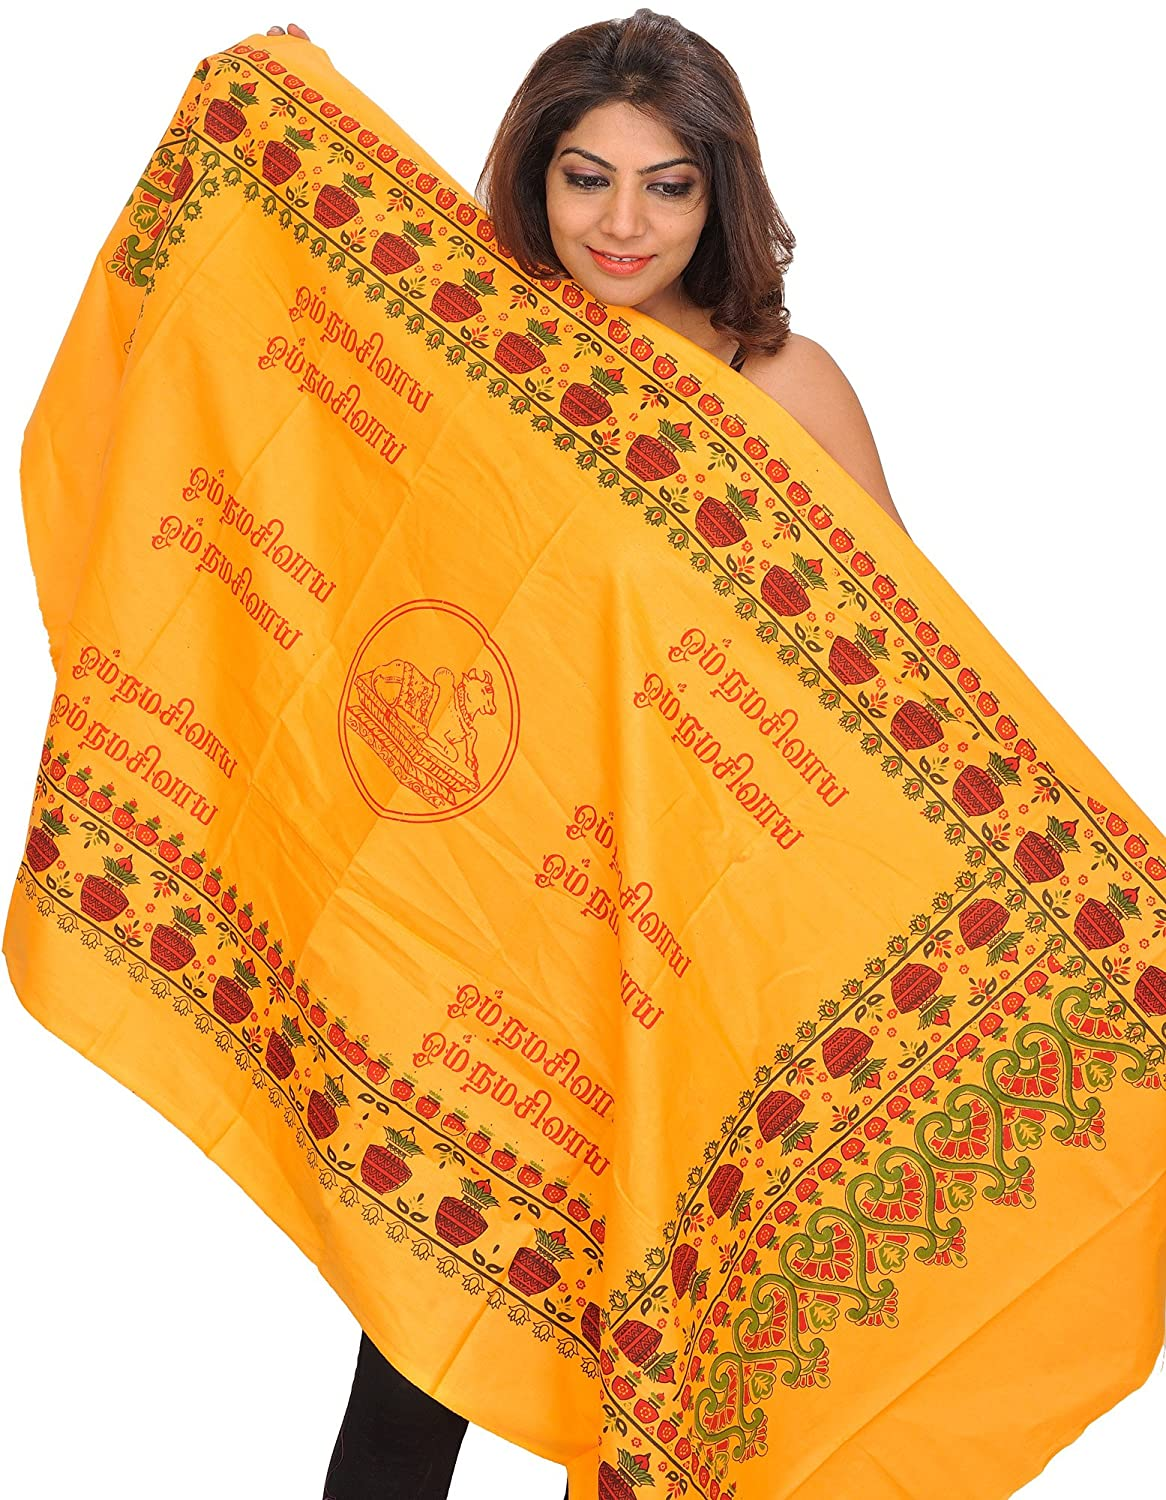 Exotic India Marigold Om Shakti Prayer Shawl from Tamil Nadu with Print - Orange